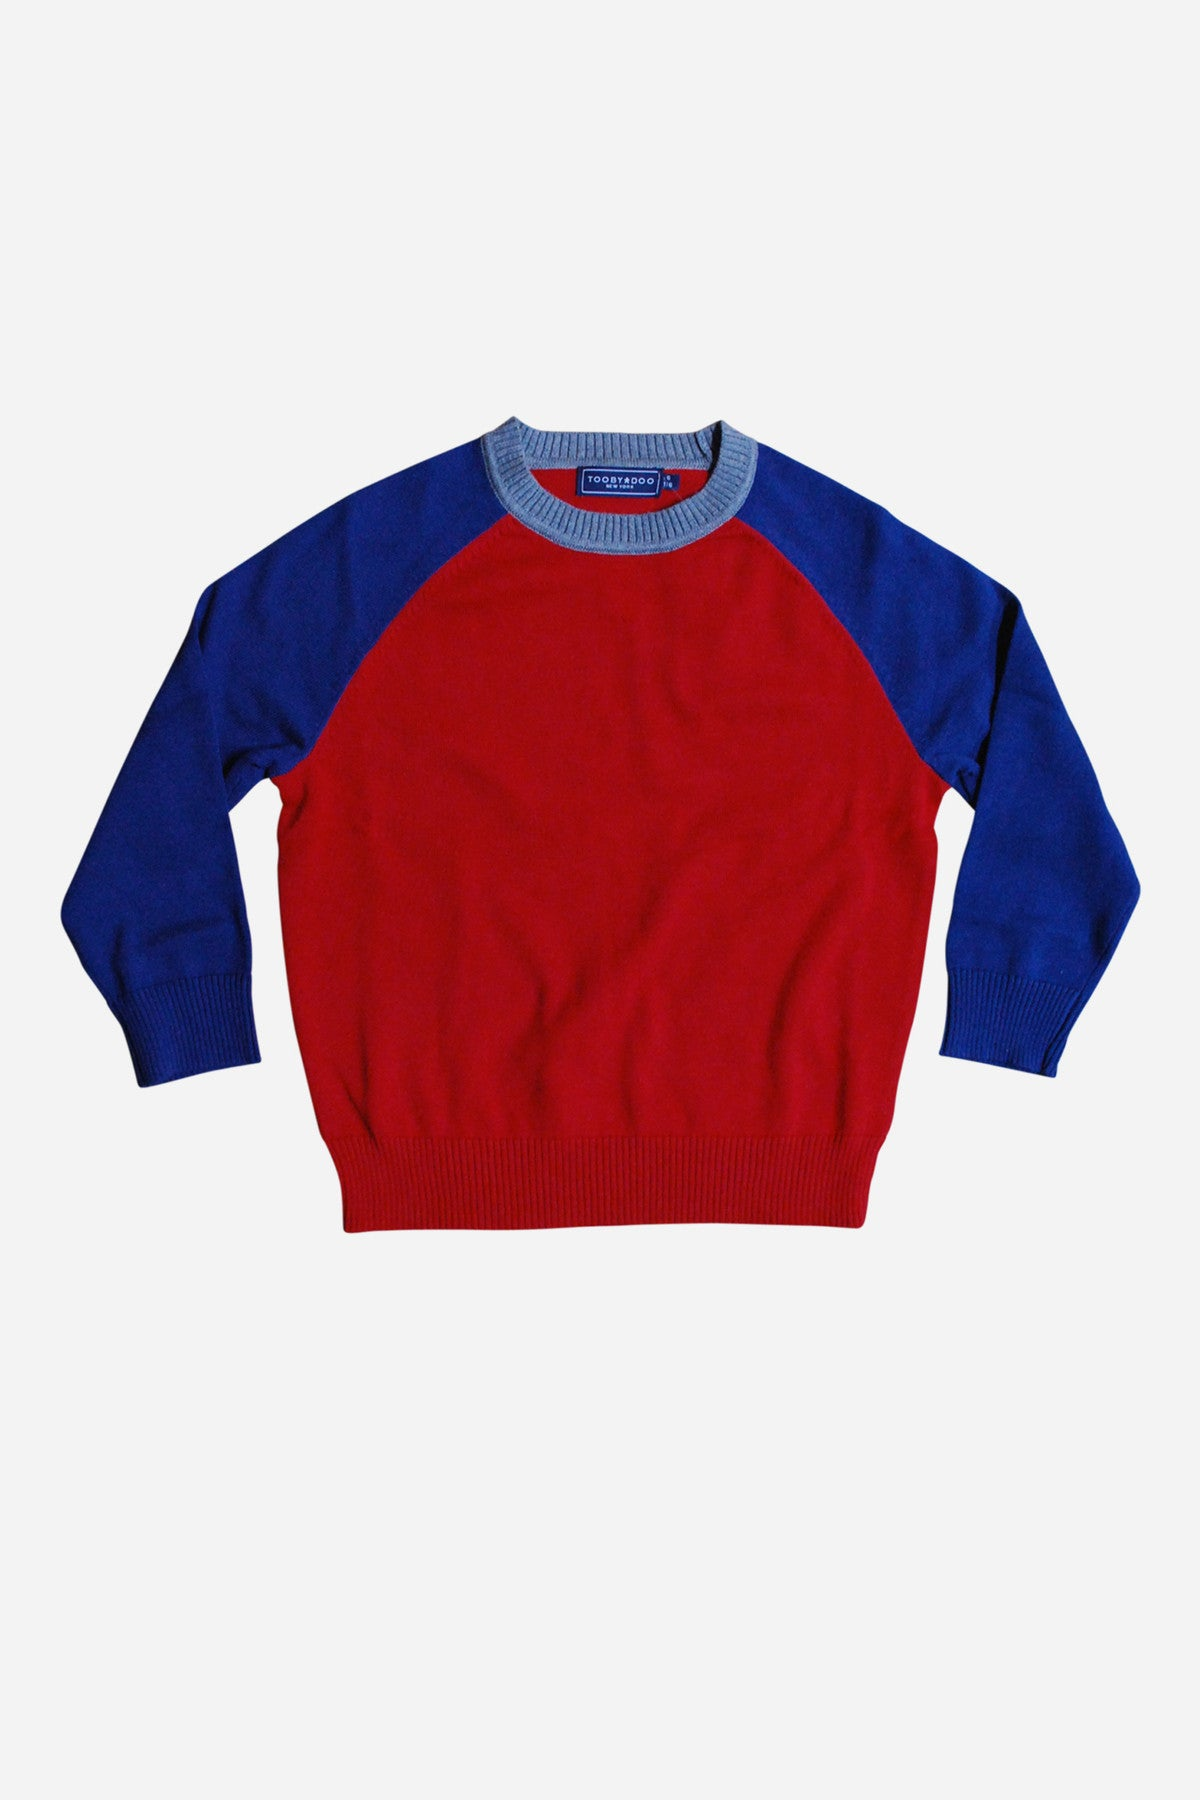 Toobydoo Blue/Red Boys Baseball Sweater (Size 4 left)